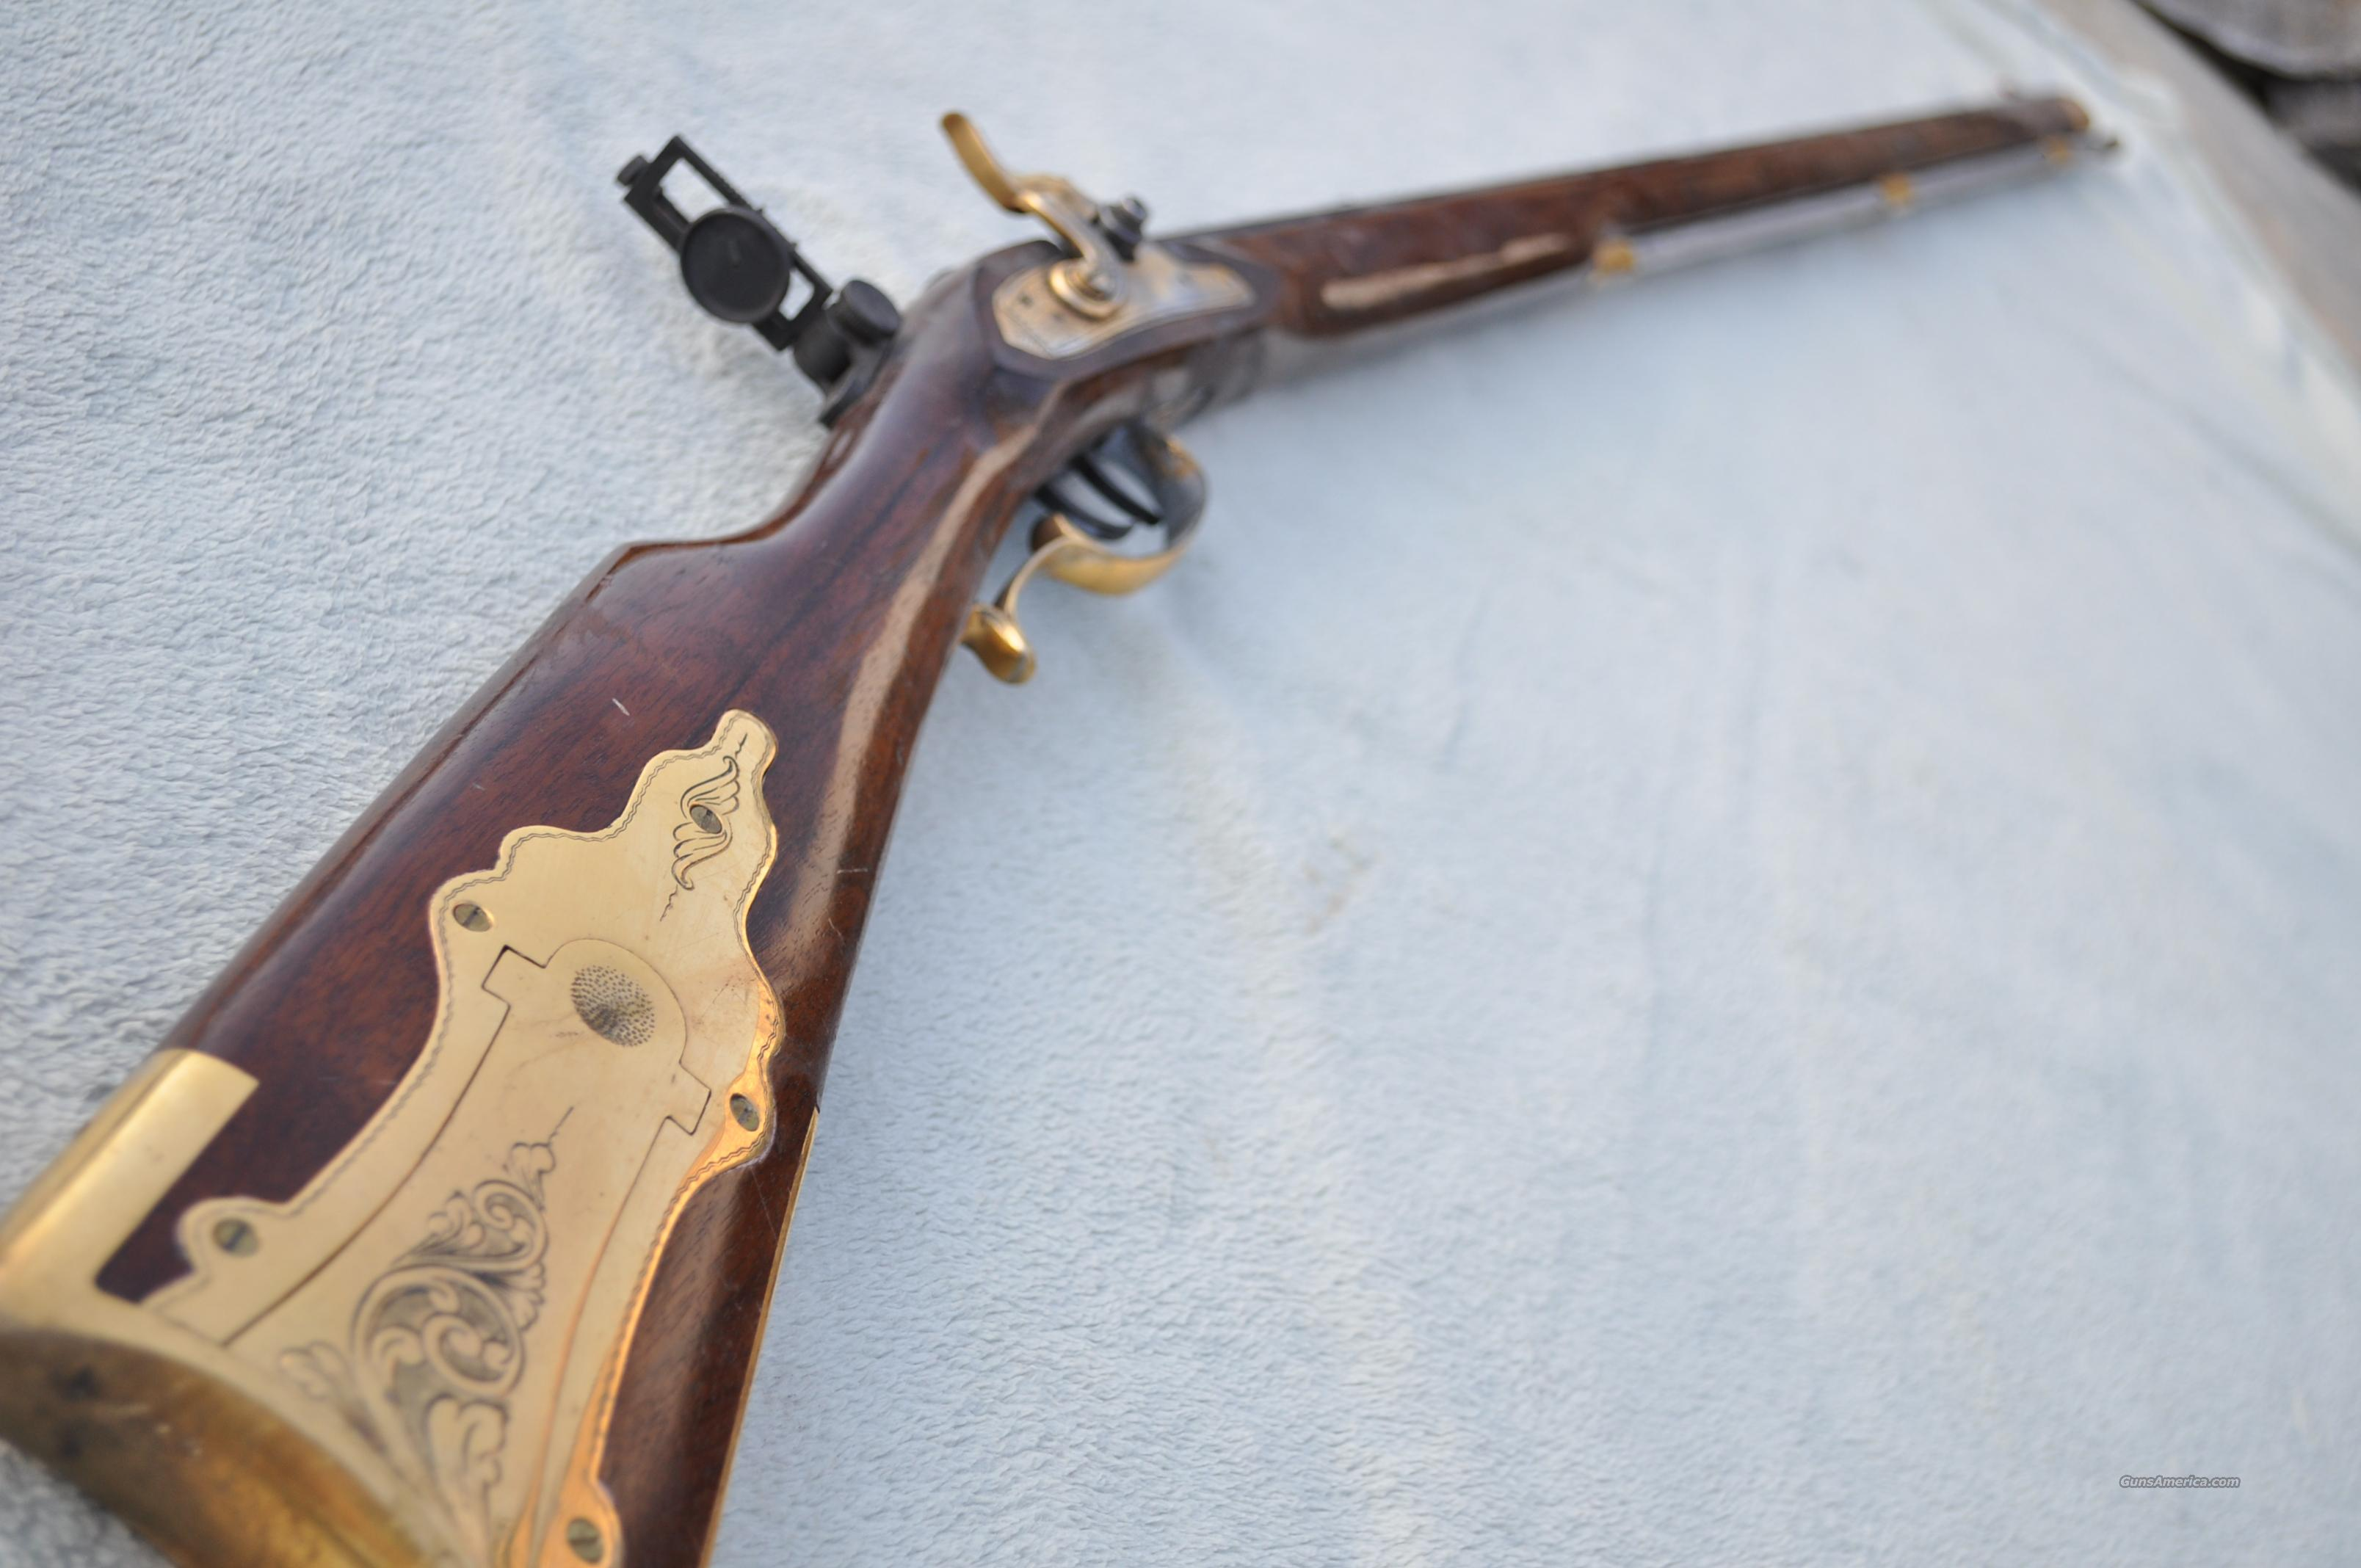 Connecticut Valley Arms Percussion Rifle .50 Cal Penn made in Spain with Tang Sight  Guns > Rifles > Connecticut  Valley Arms (CVA) Rifles > Traditional Muzzleloaders